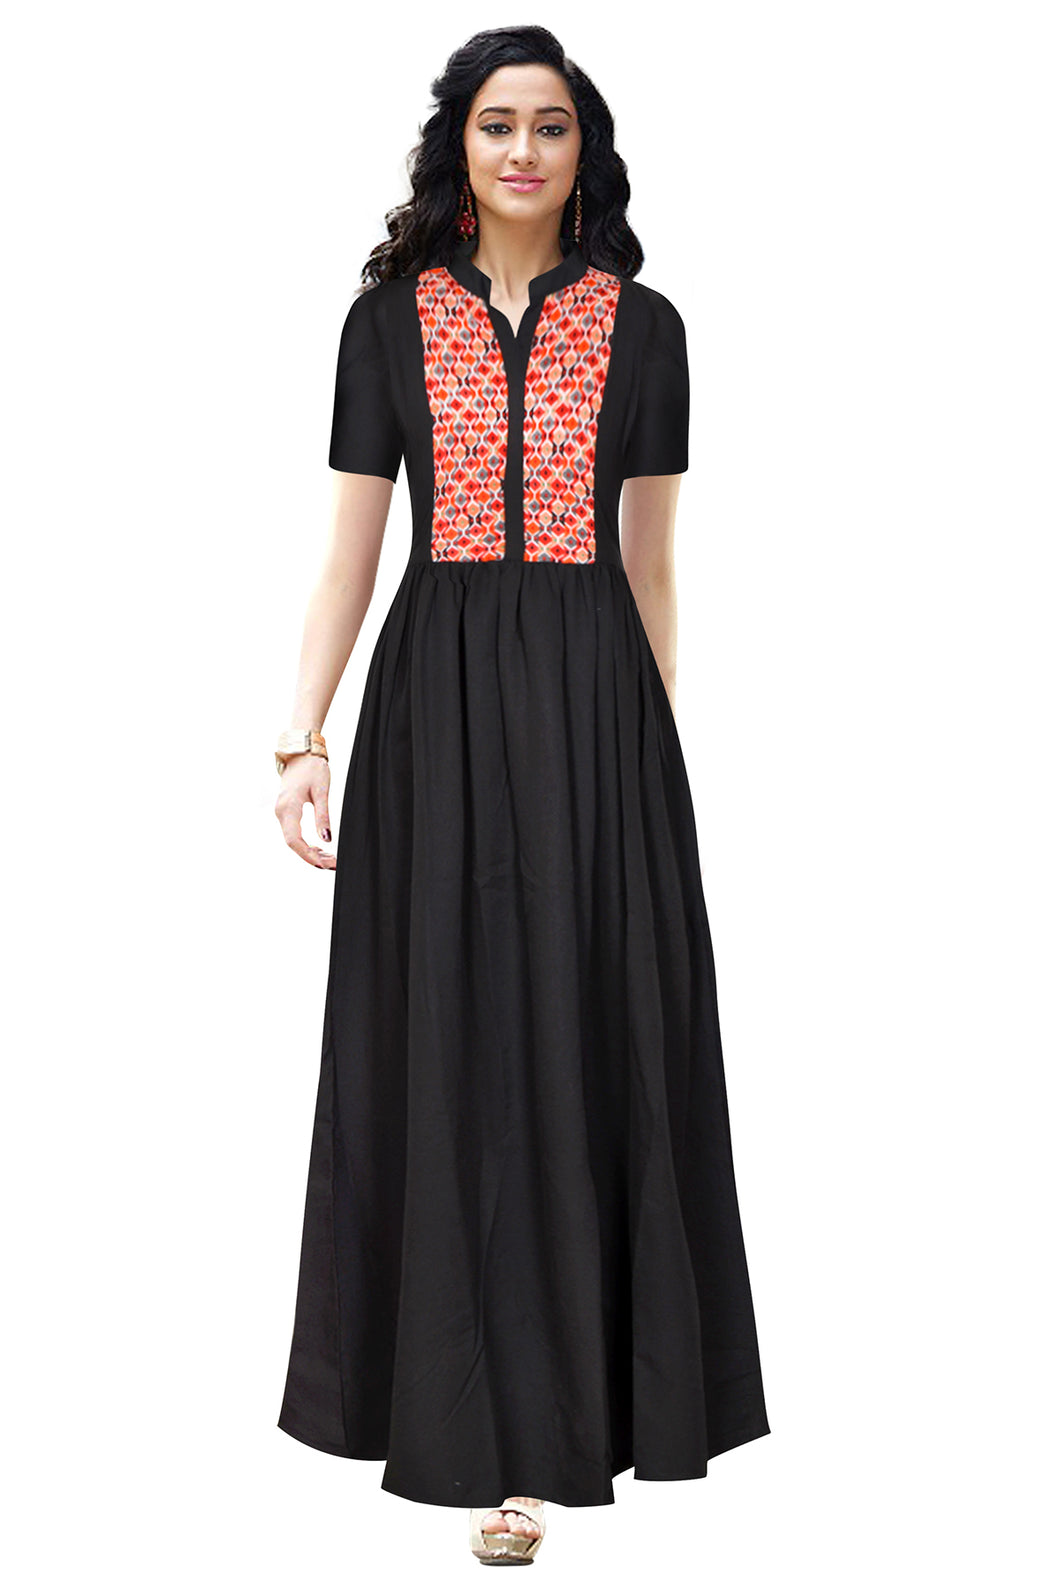 Collared Long Dress Black with printed vest design - ForHar Closet